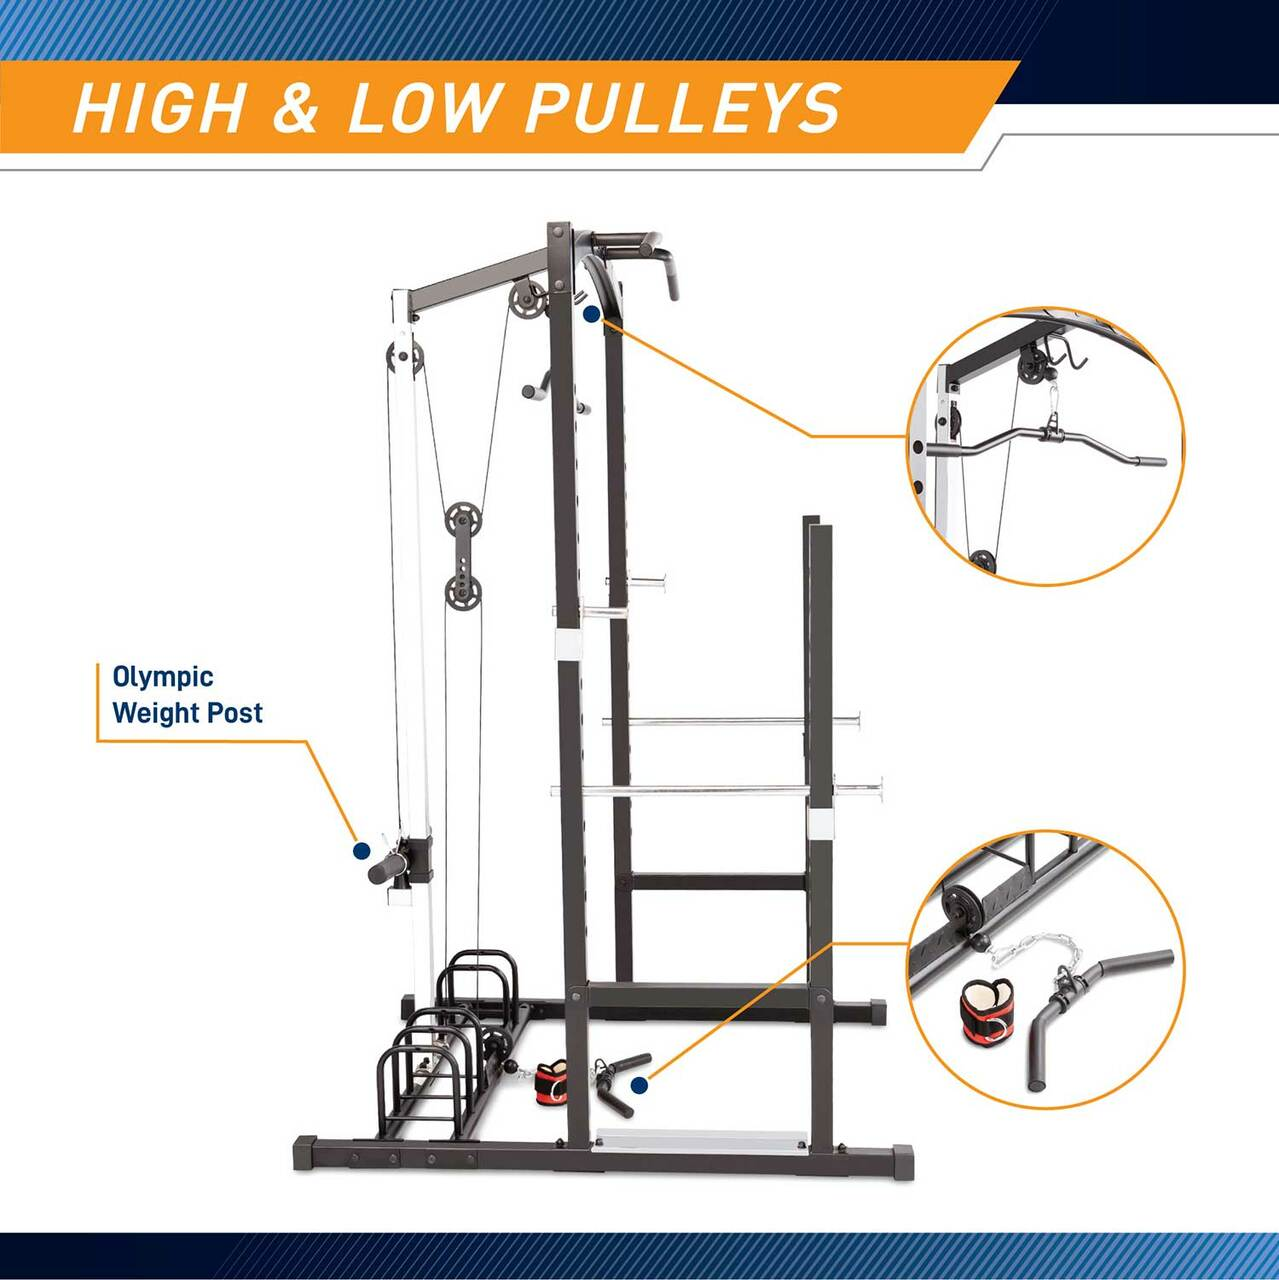 The Marcy Cage Home Gym MWM-7041 includes a shiv bar for rowing and more